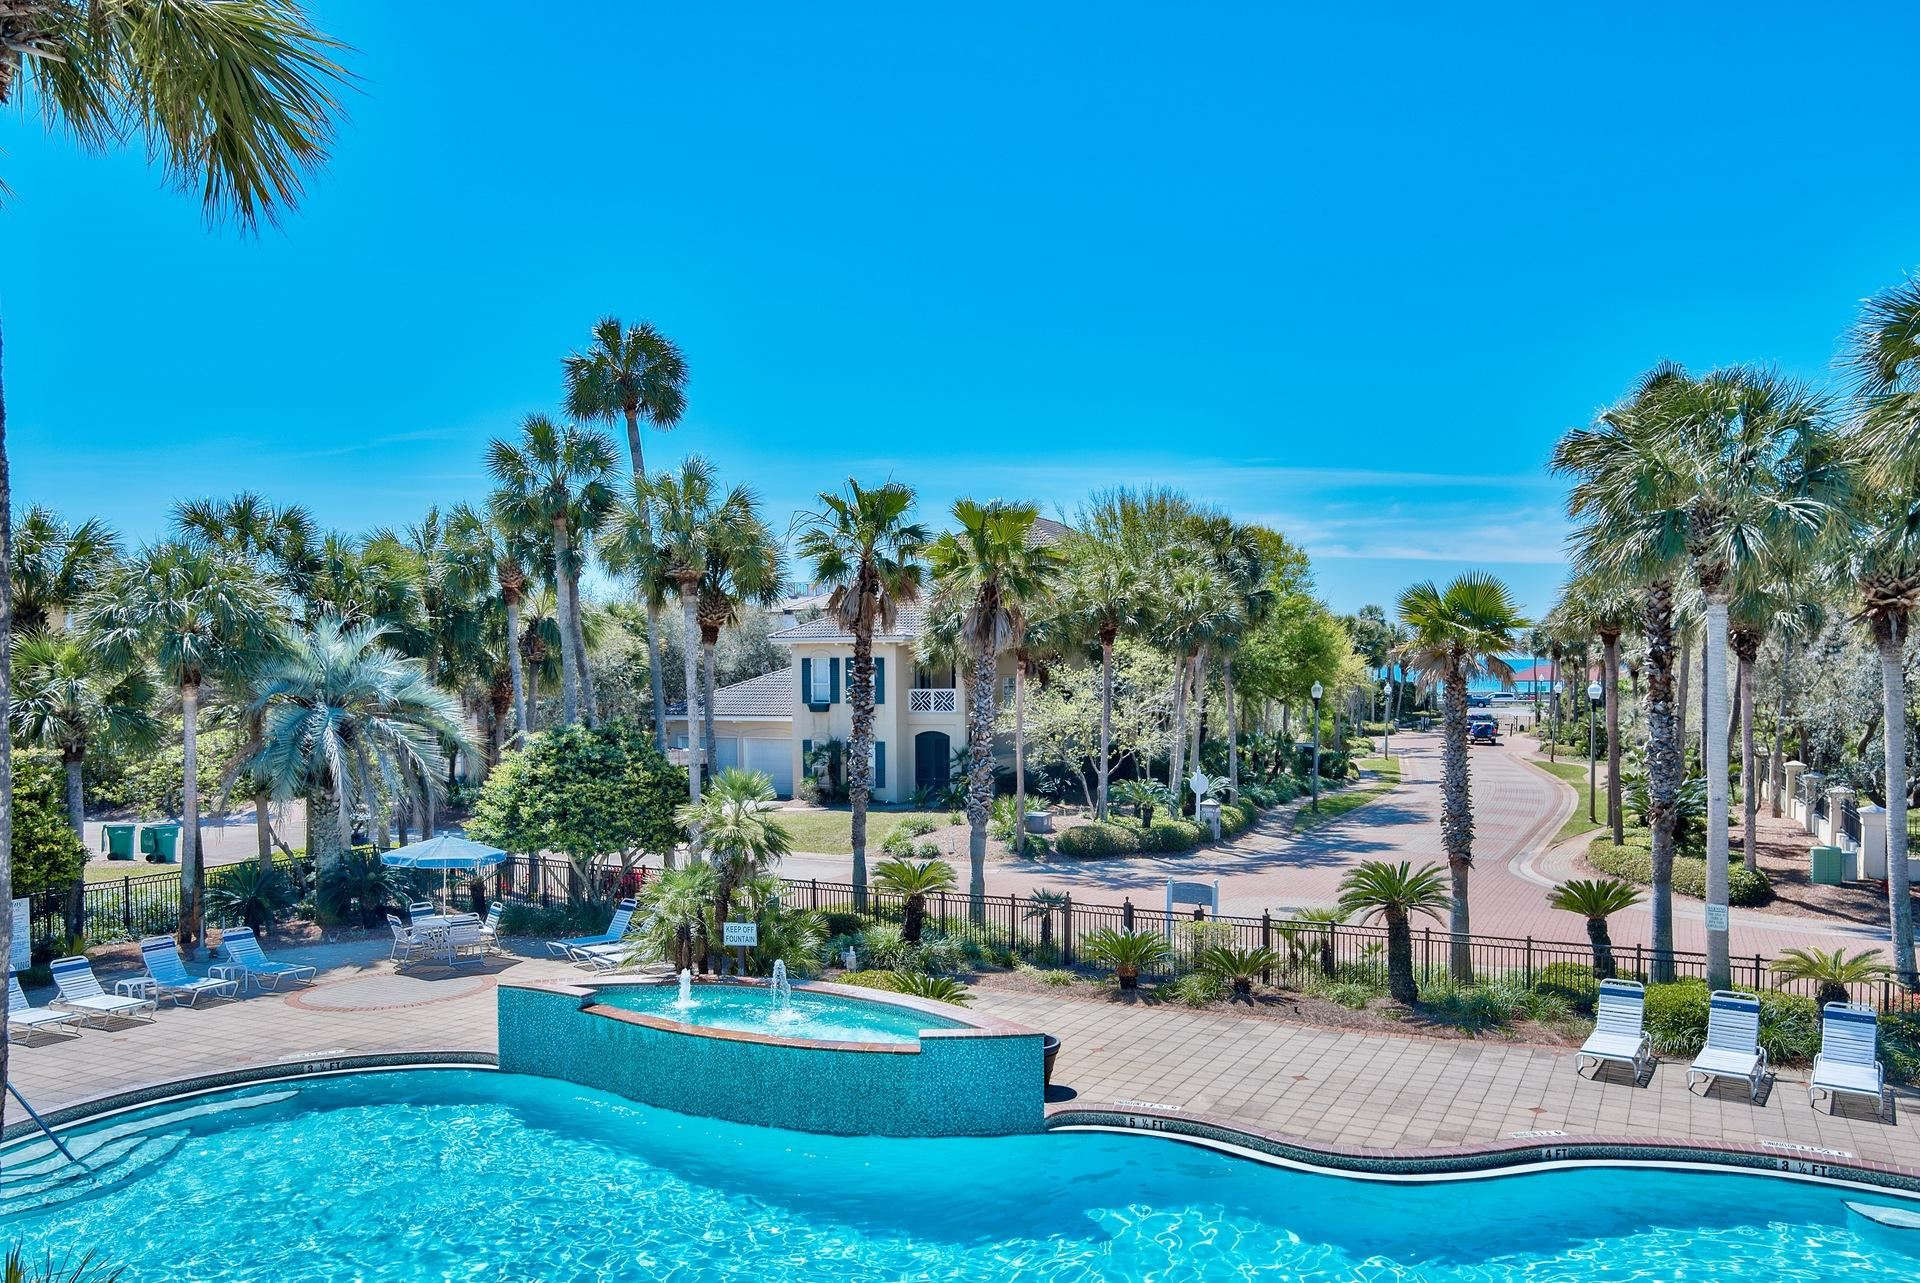 Property Image Of 4657 Destiny Way In Destin, Fl